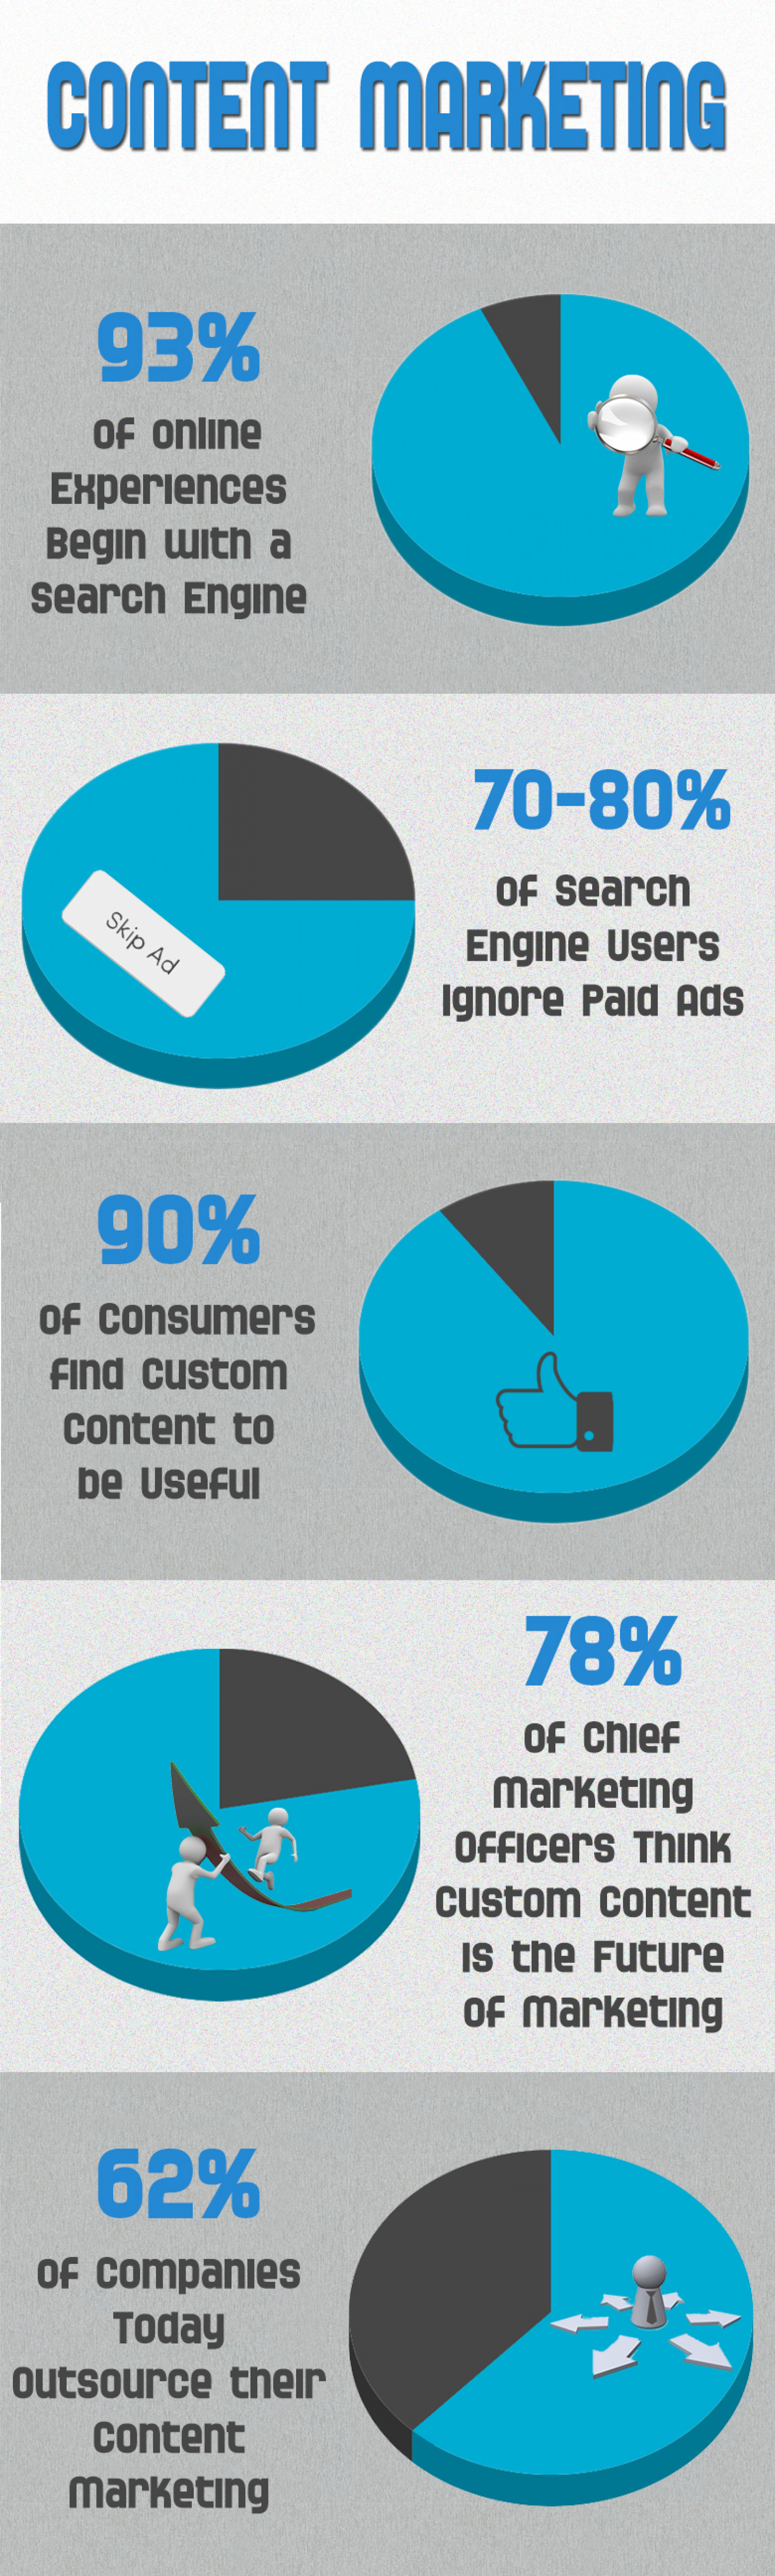 Eye Opening Content Marketing Strategy Statistics Infographic